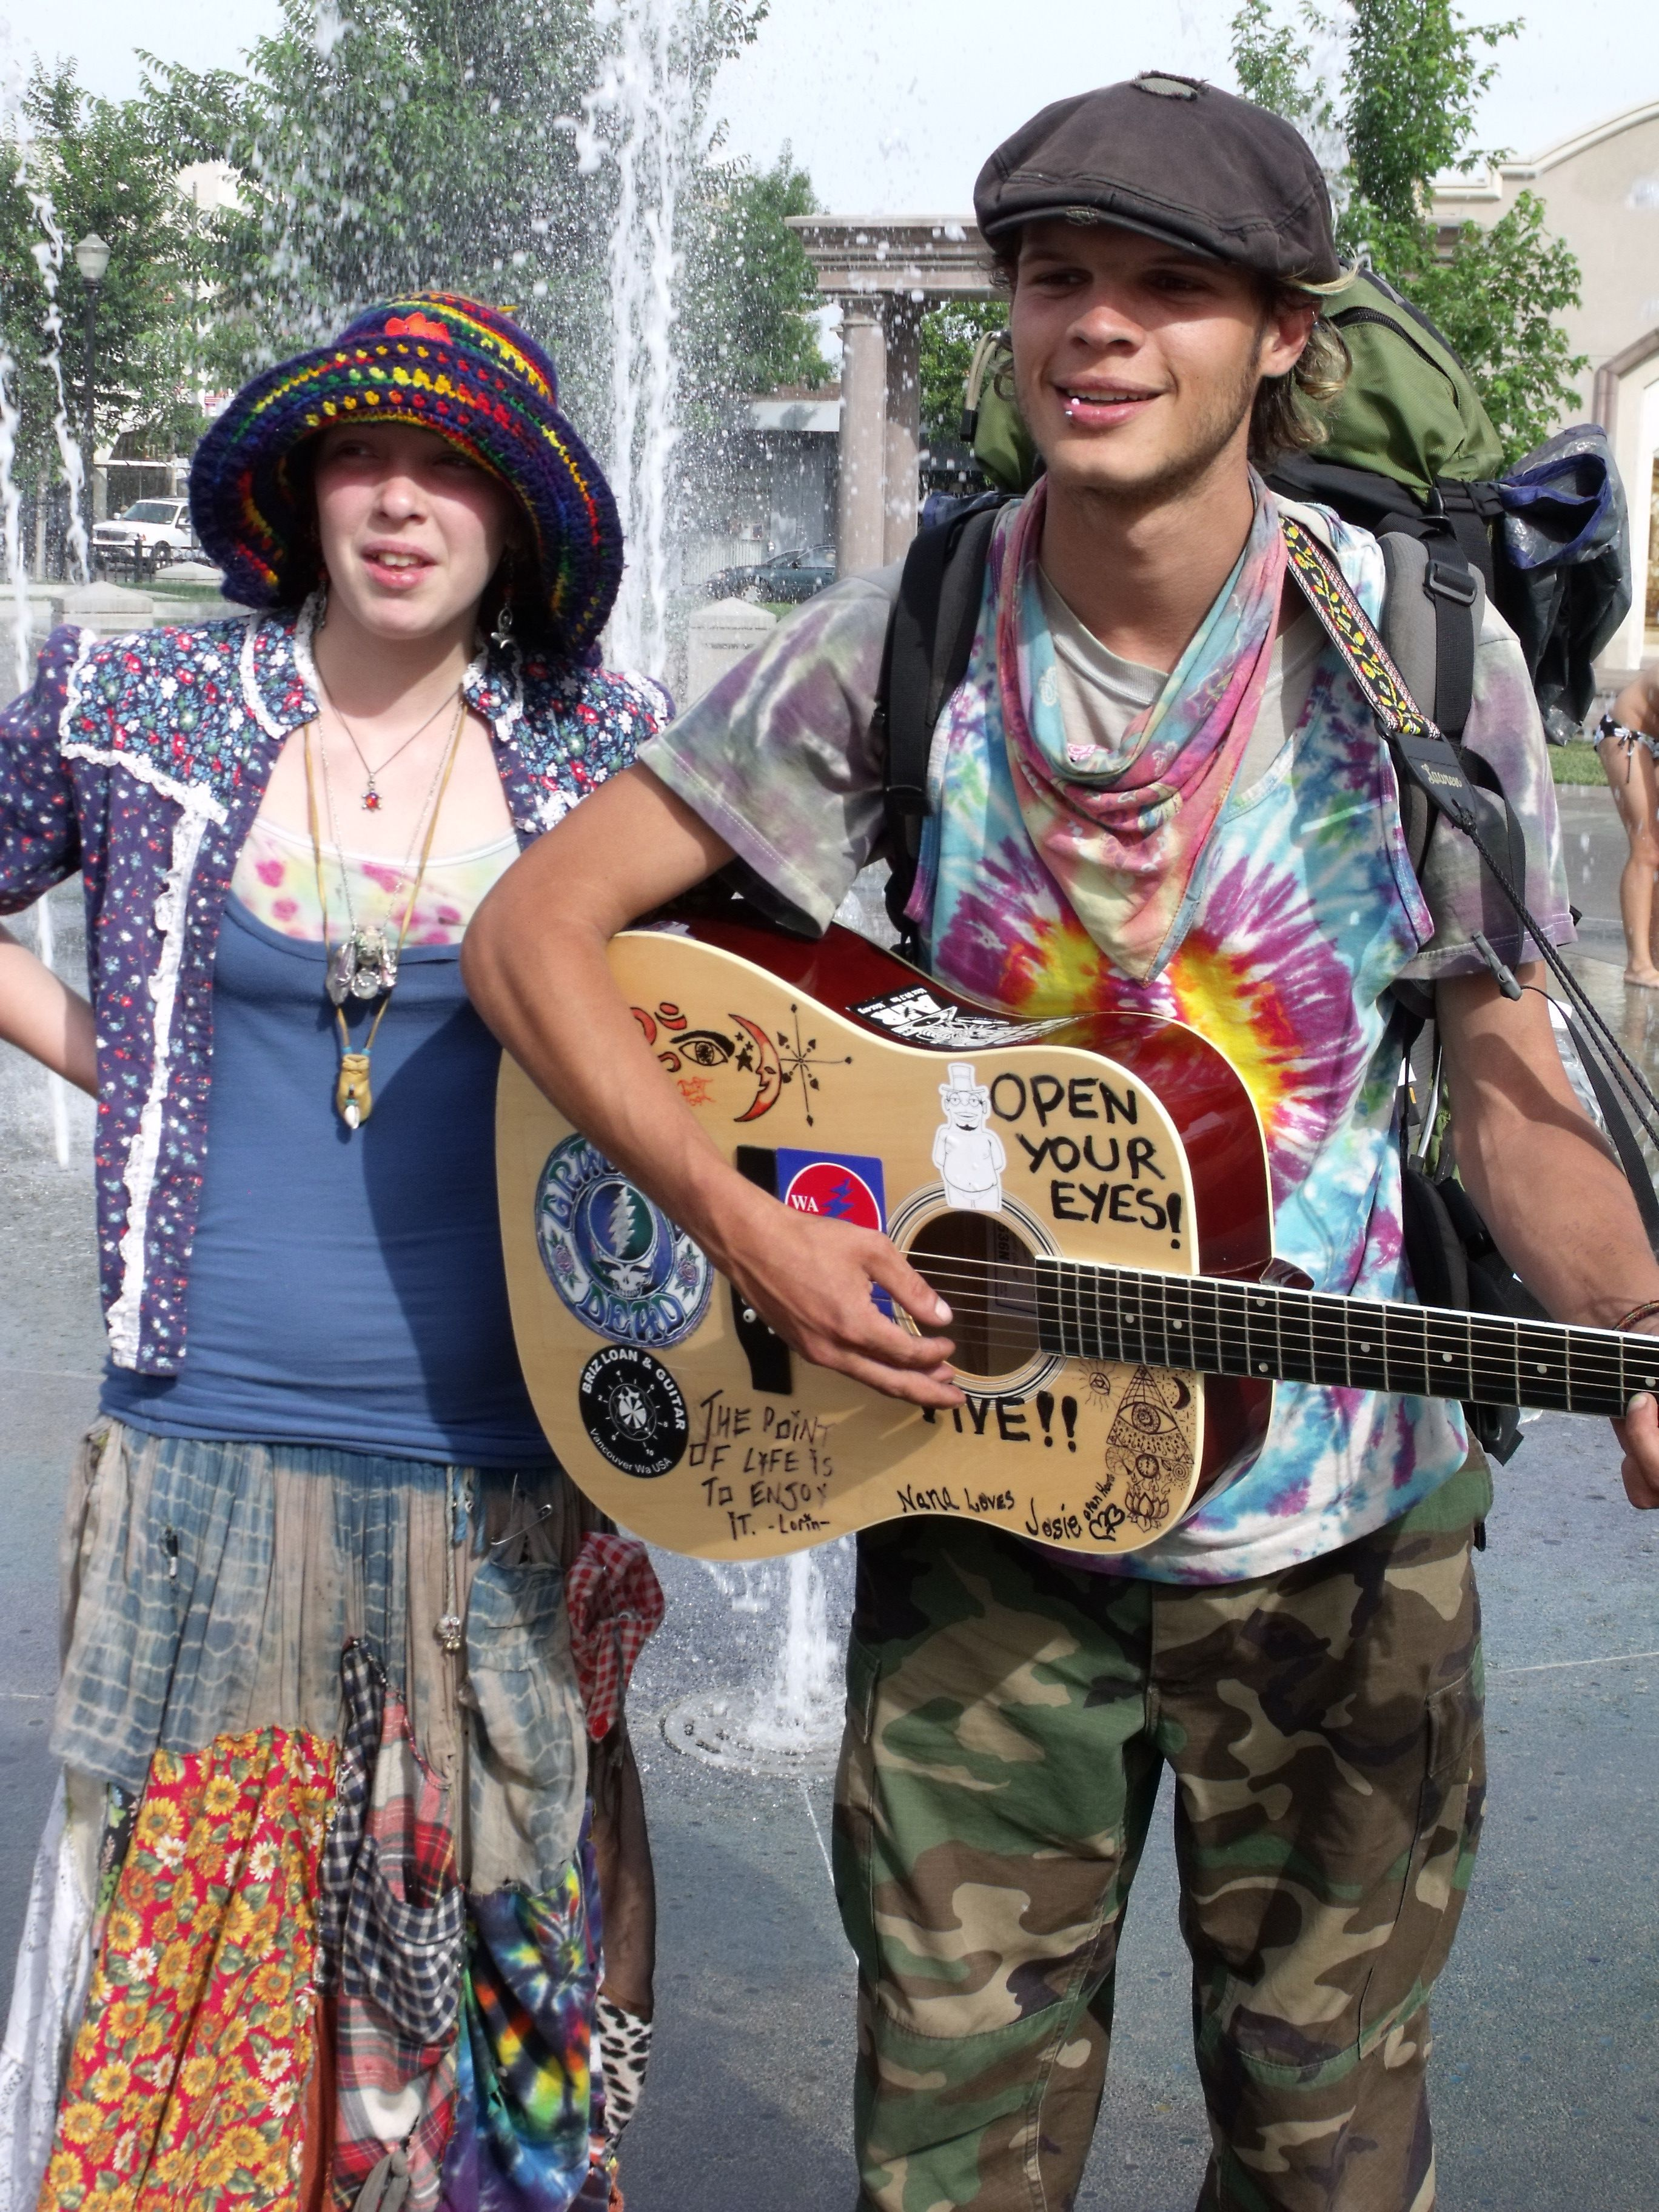 Hippies never go out of style. In northern California you